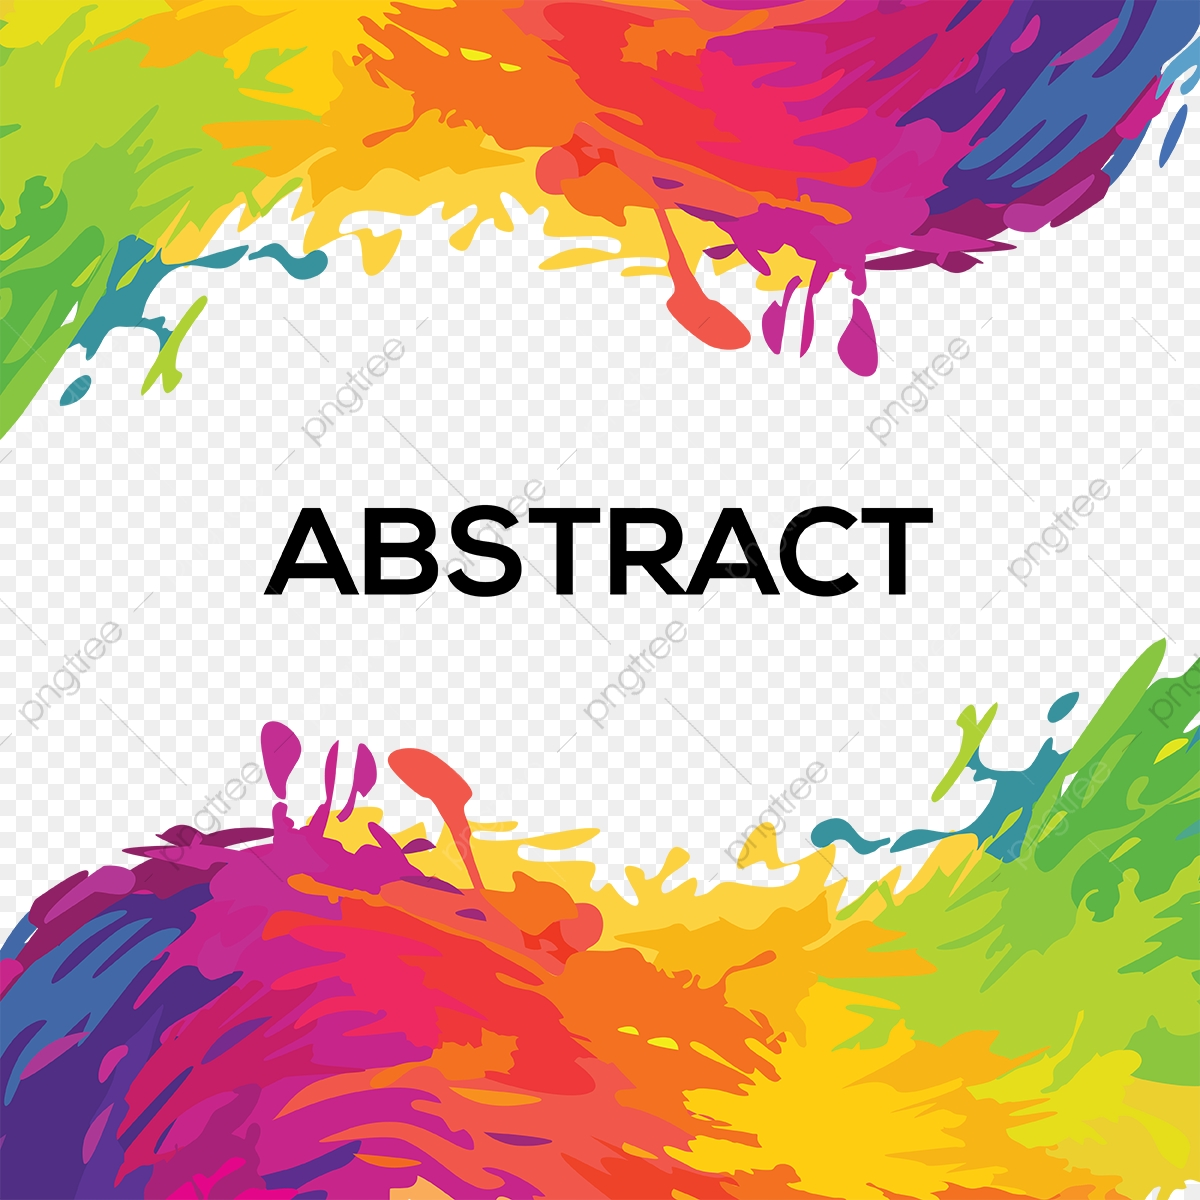 GUIDES ON HOW TO WRITE OUTSTANDING ABSTRACT FOR THESIS PROJECT TOPICS image